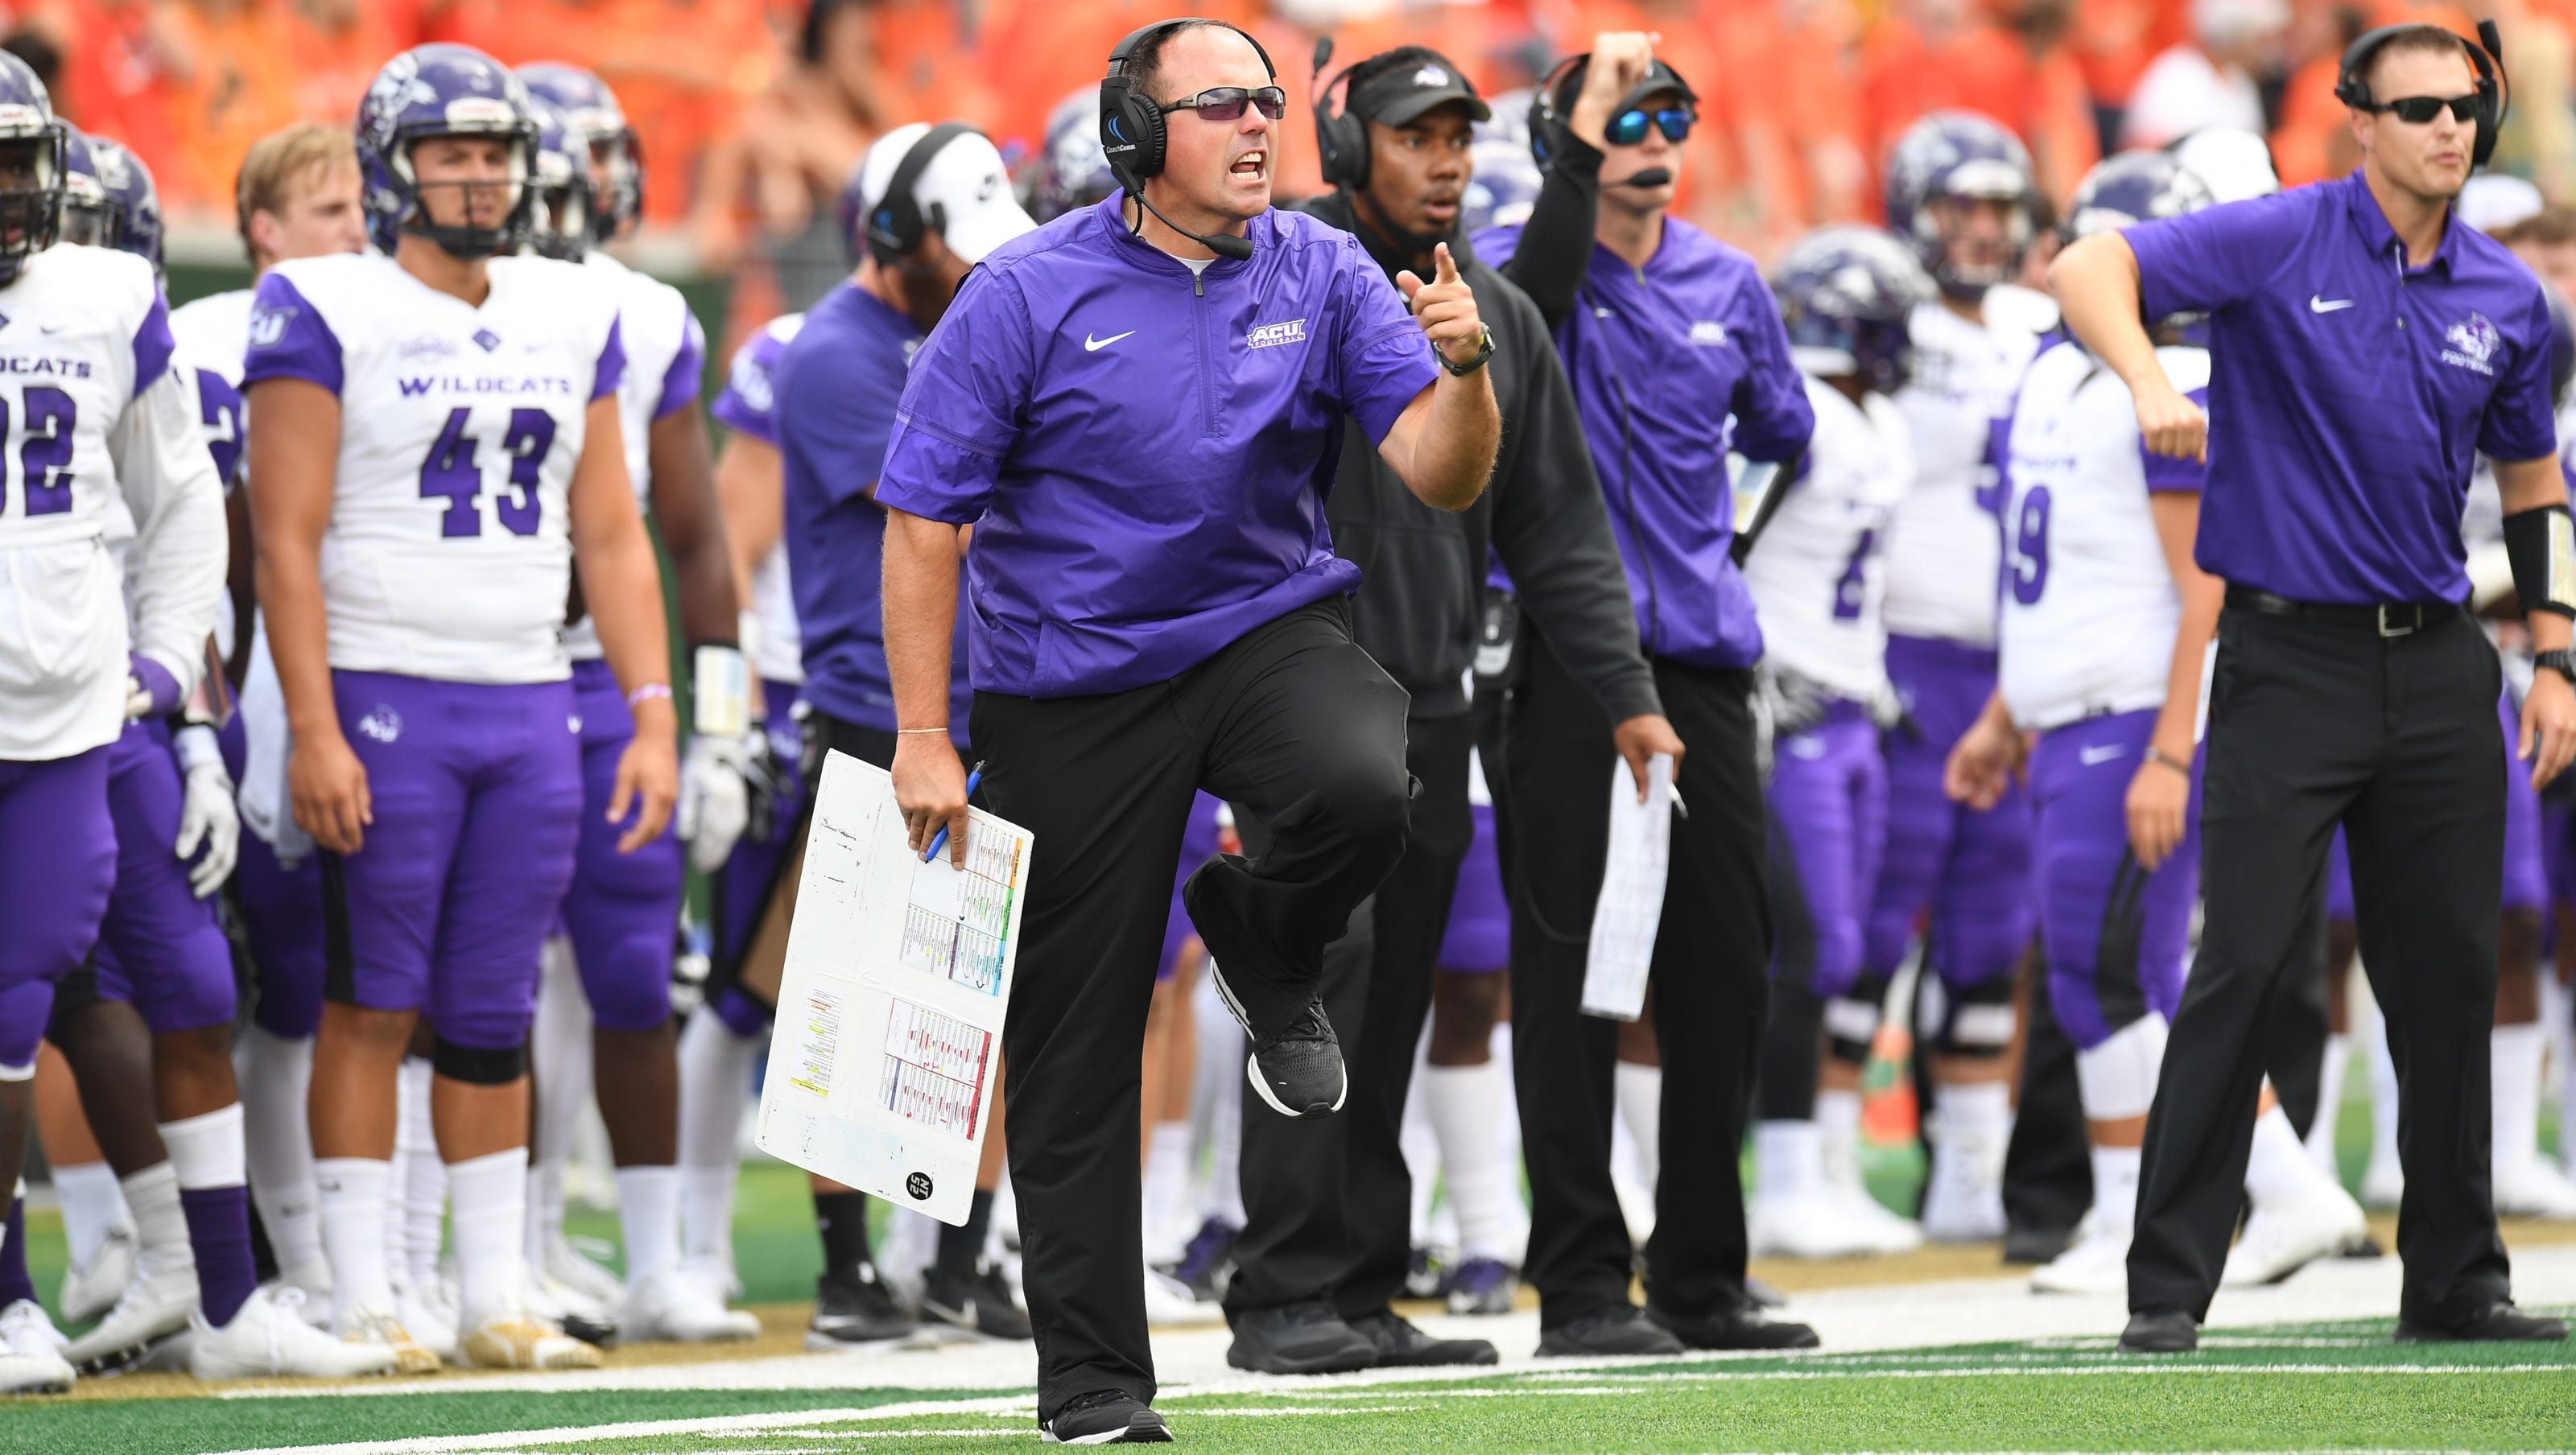 Acu Players Coach Sense History In Baylor Game